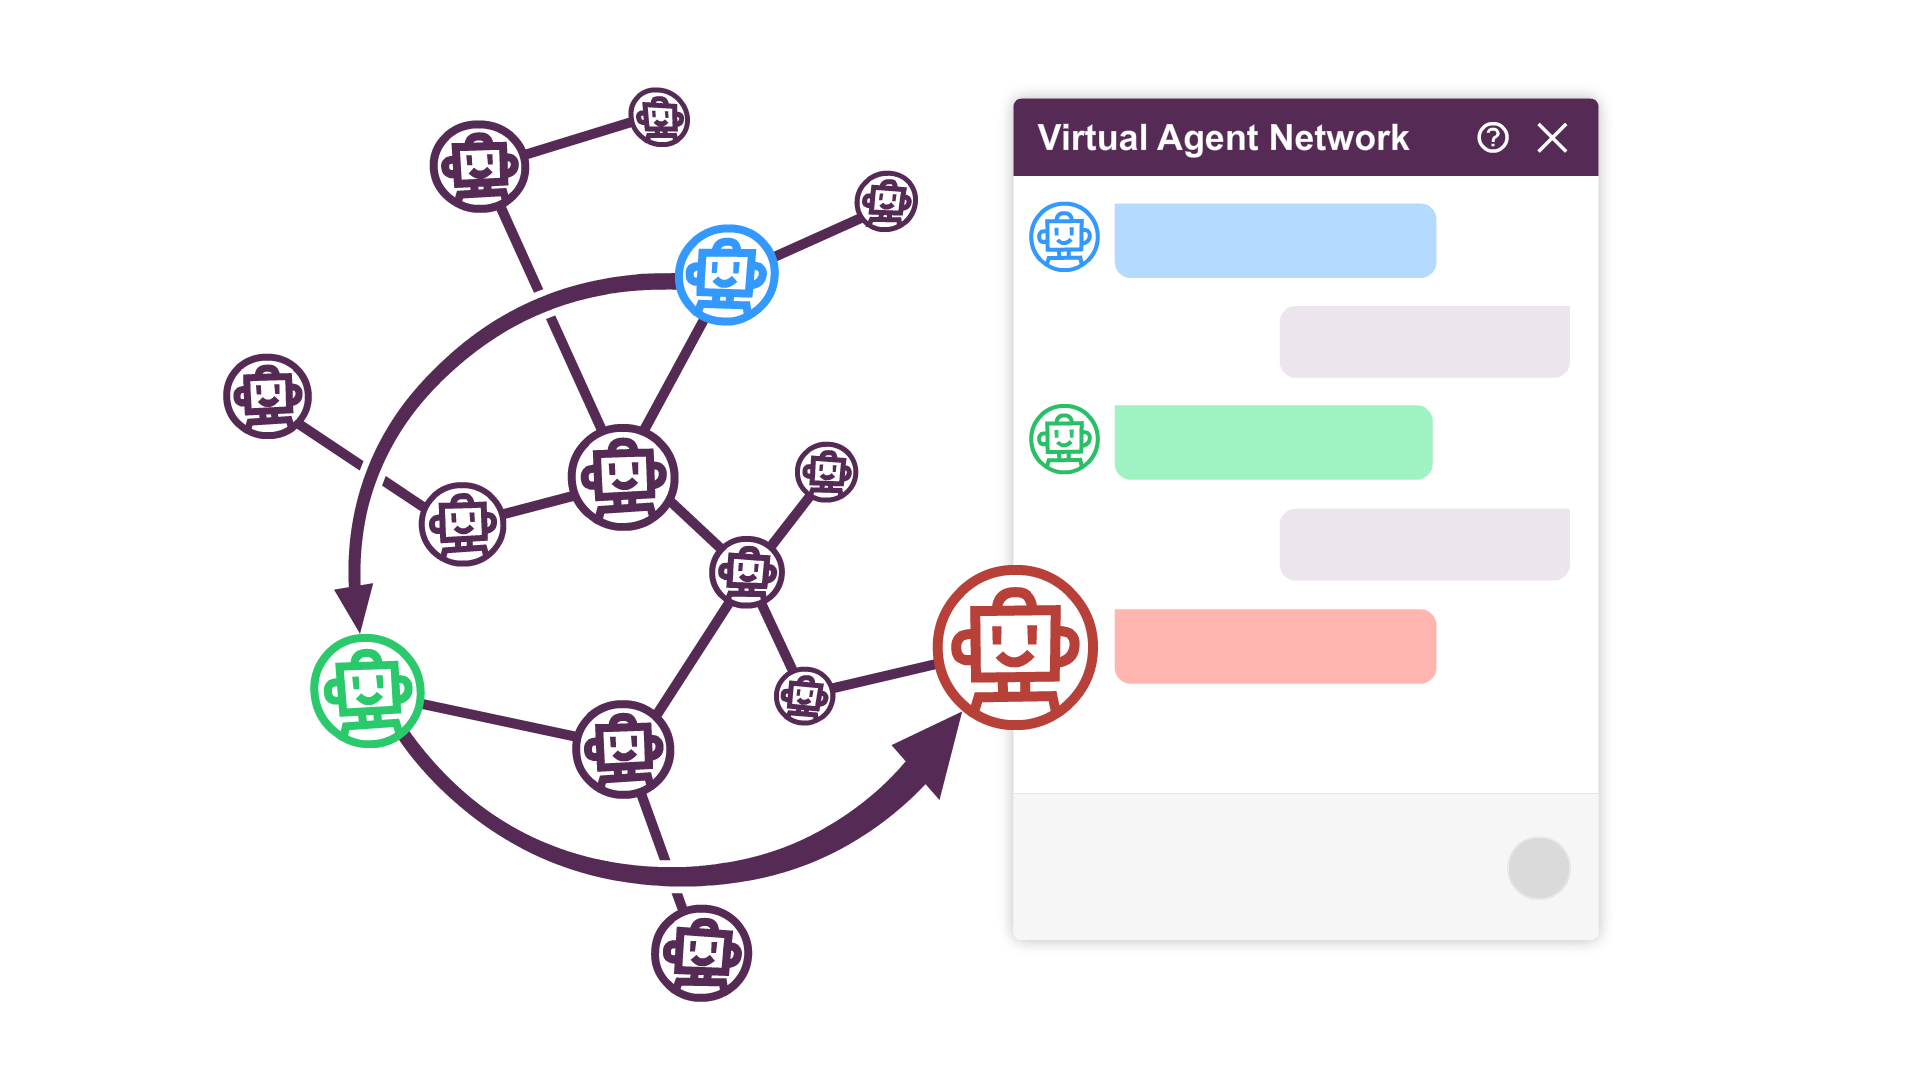 One of the specialized features from boost.ai is the virtual agent network which allows you to connect all your chatbots in one network